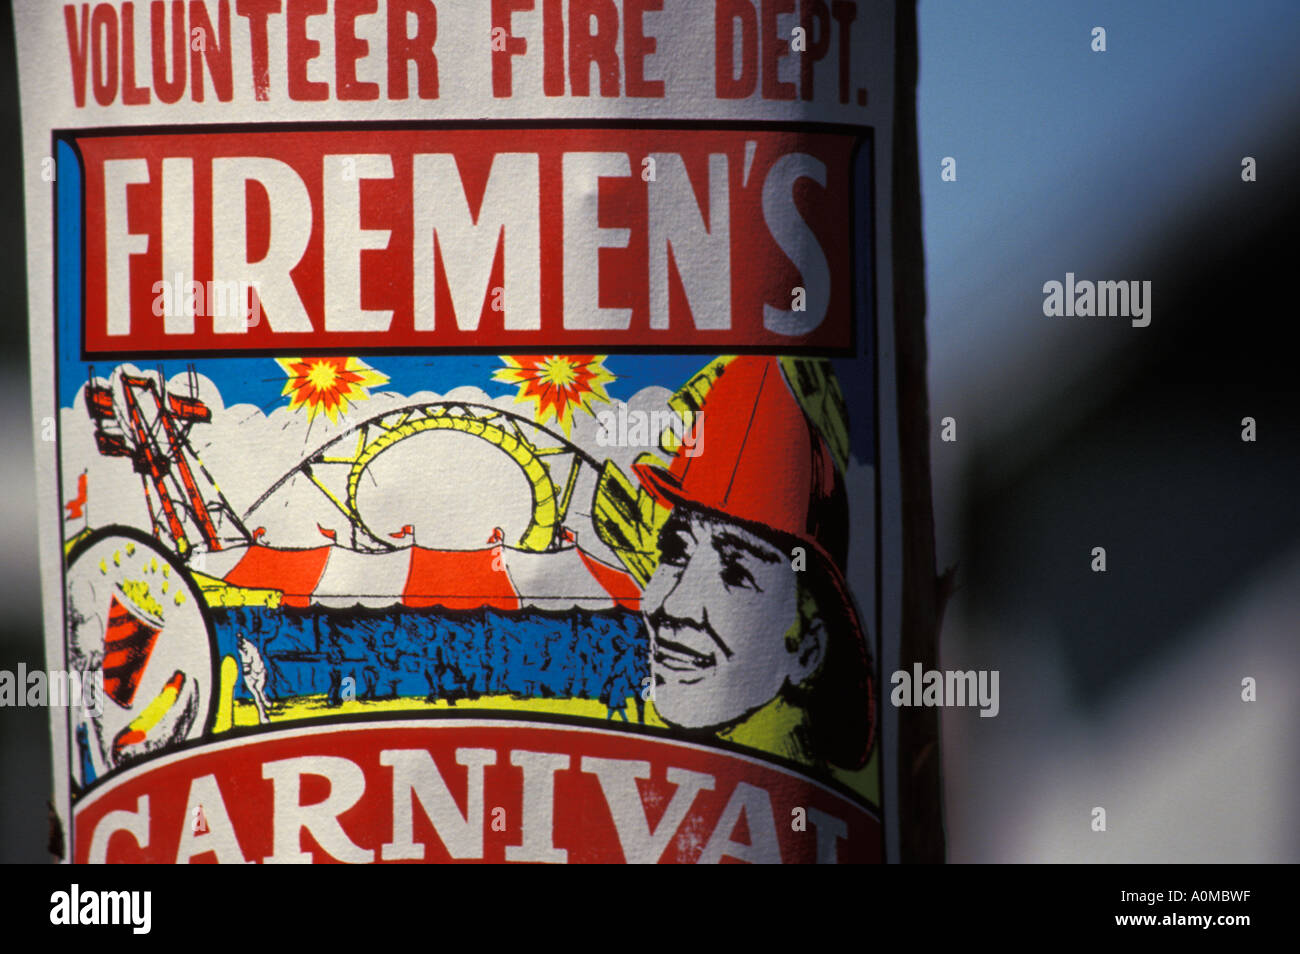 poster ad advertisment firemens volunteer fire department carnival fun holiday family life lifestyle festival small town - Stock Image